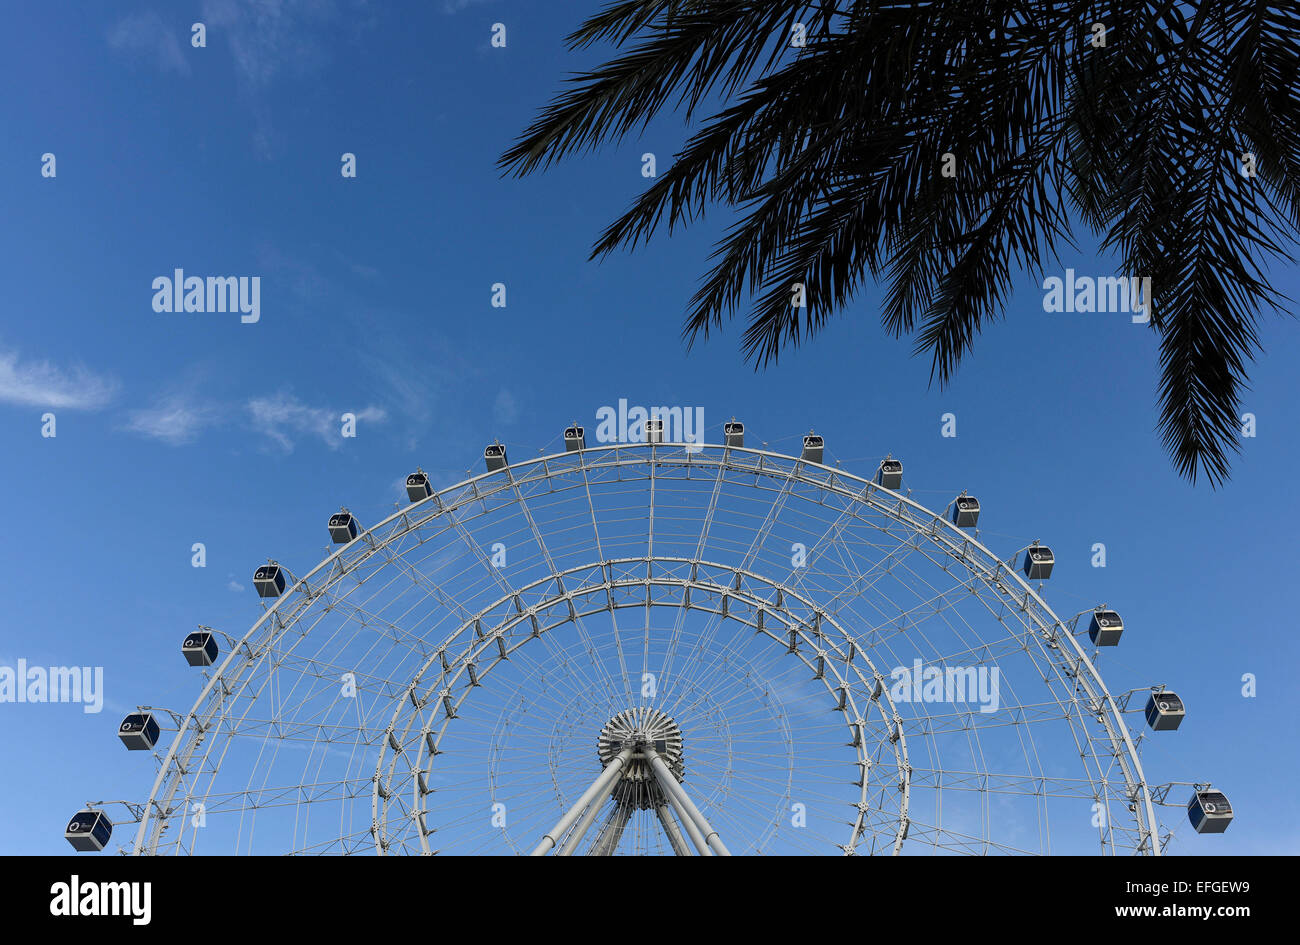 The Orlando Eye from Merlin Entertainments, in Orlando, Florida opening Spring 2015. - Stock Image